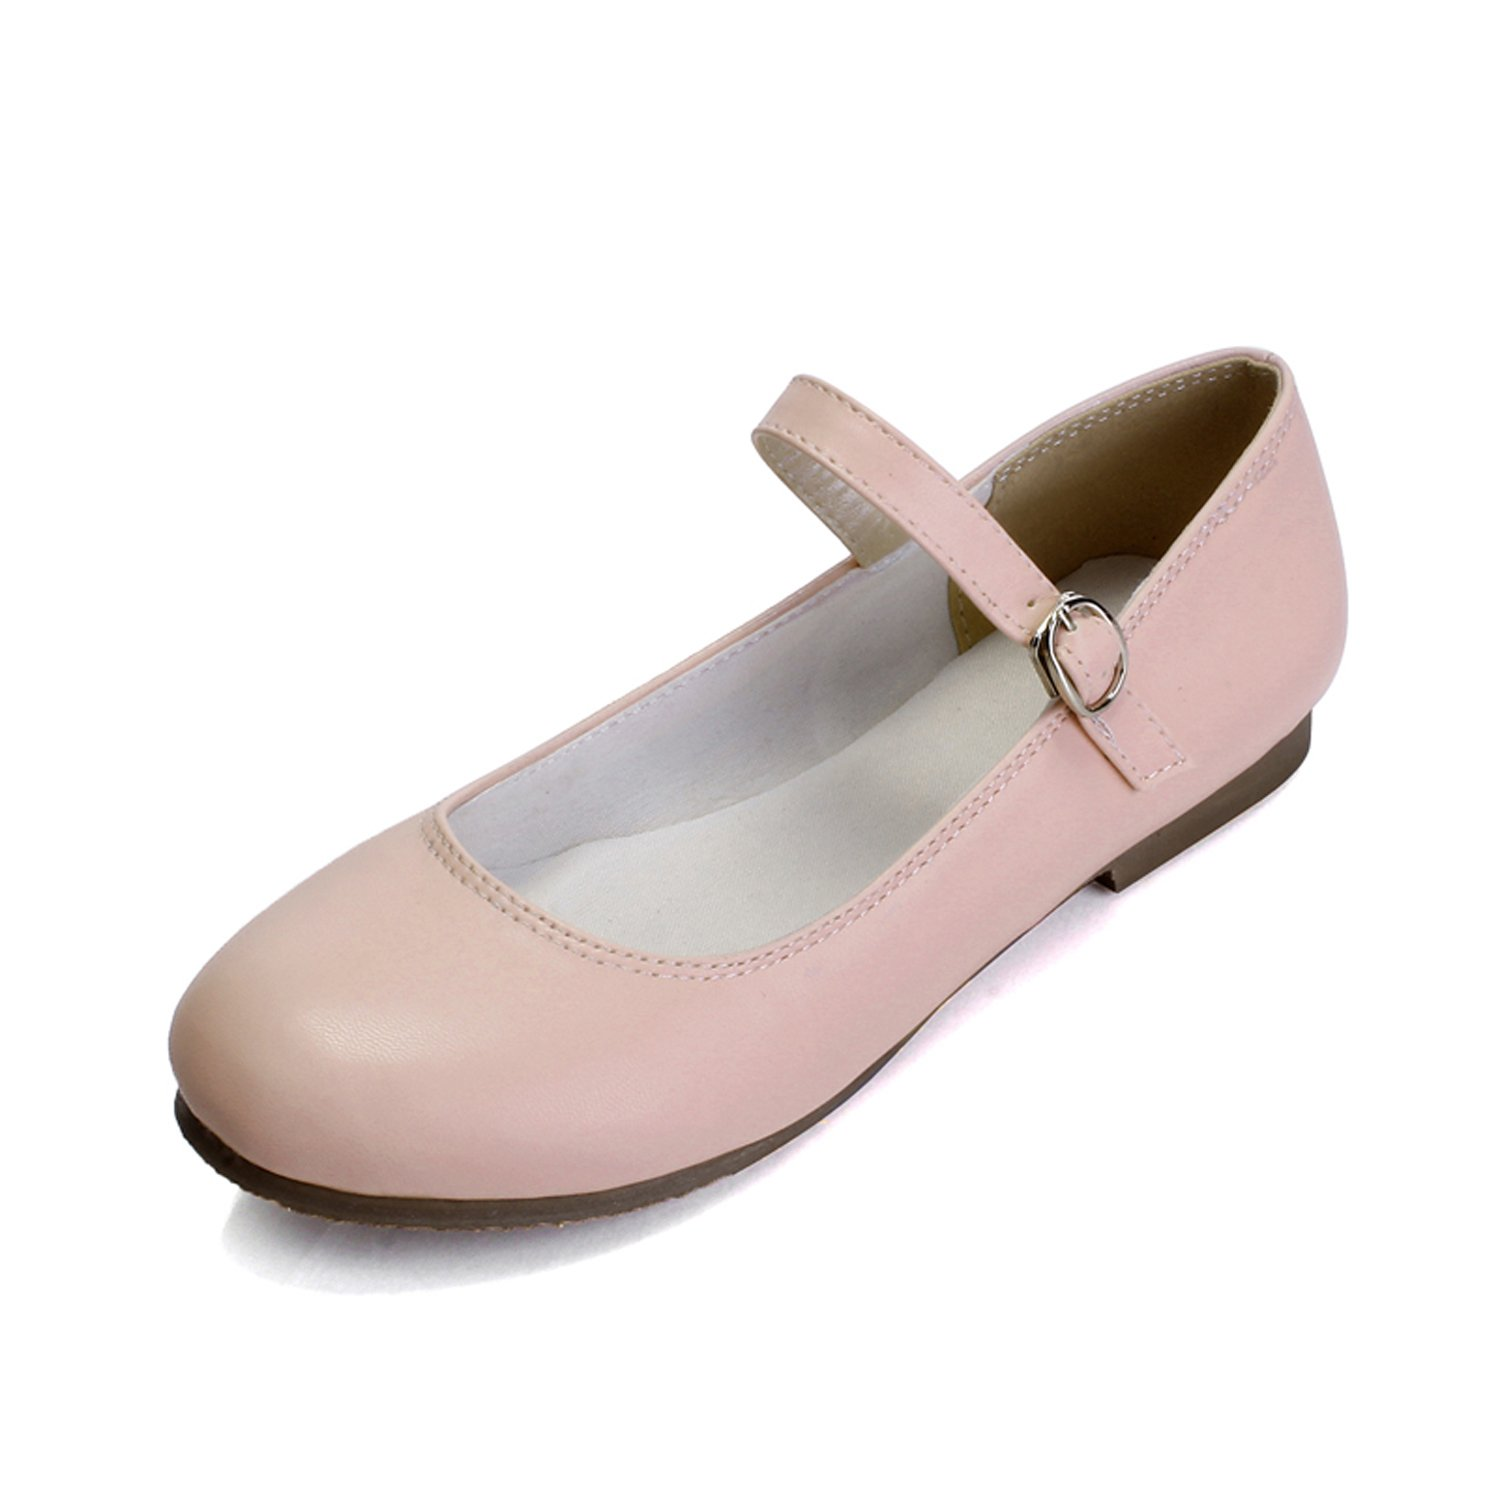 MFairy Woman's Fashion Spring/Summer Casual Vintage Mary Jane Shoes